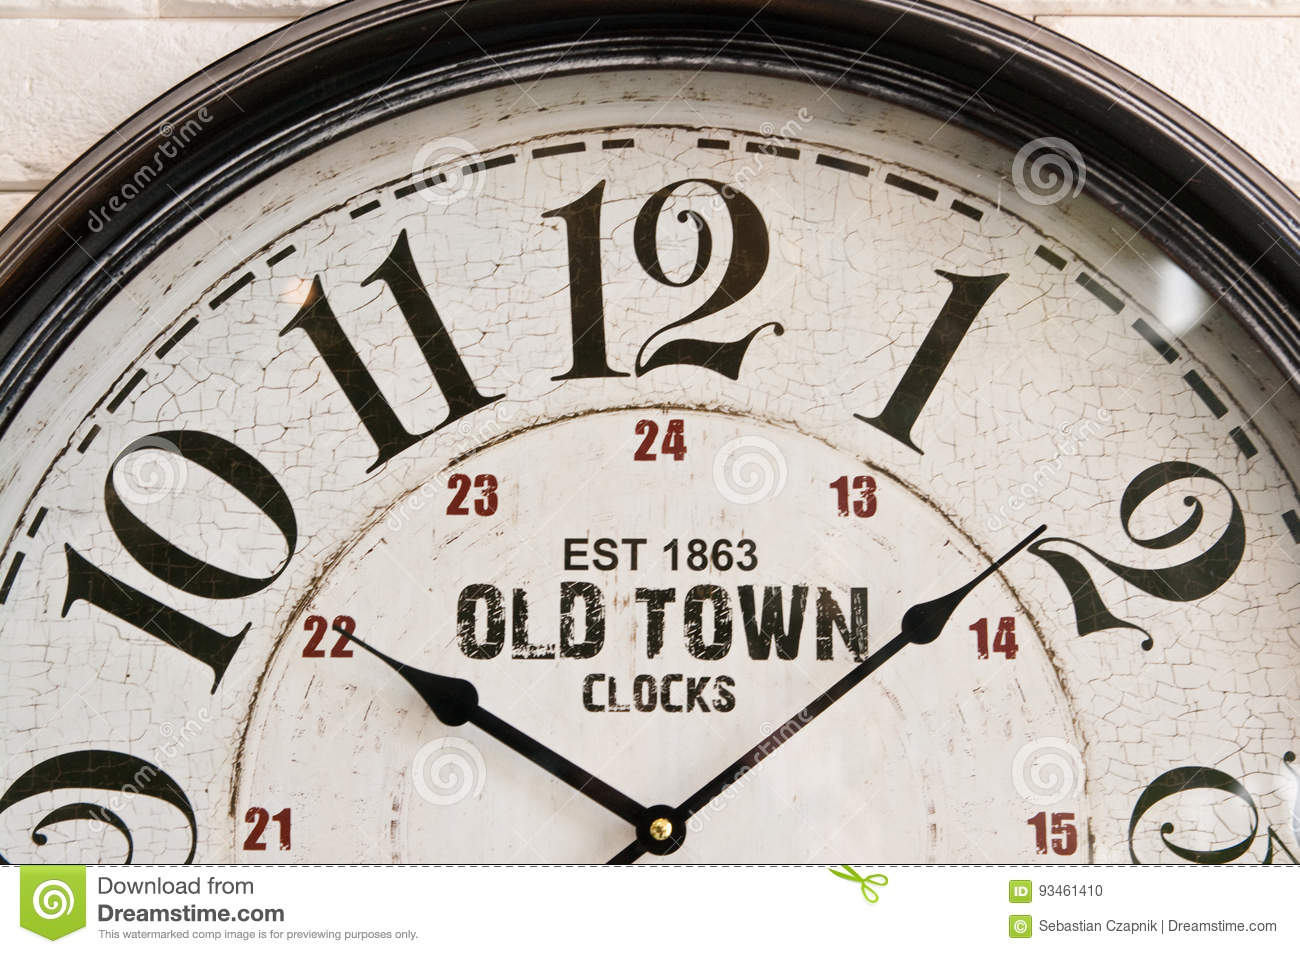 Old town wall clock face